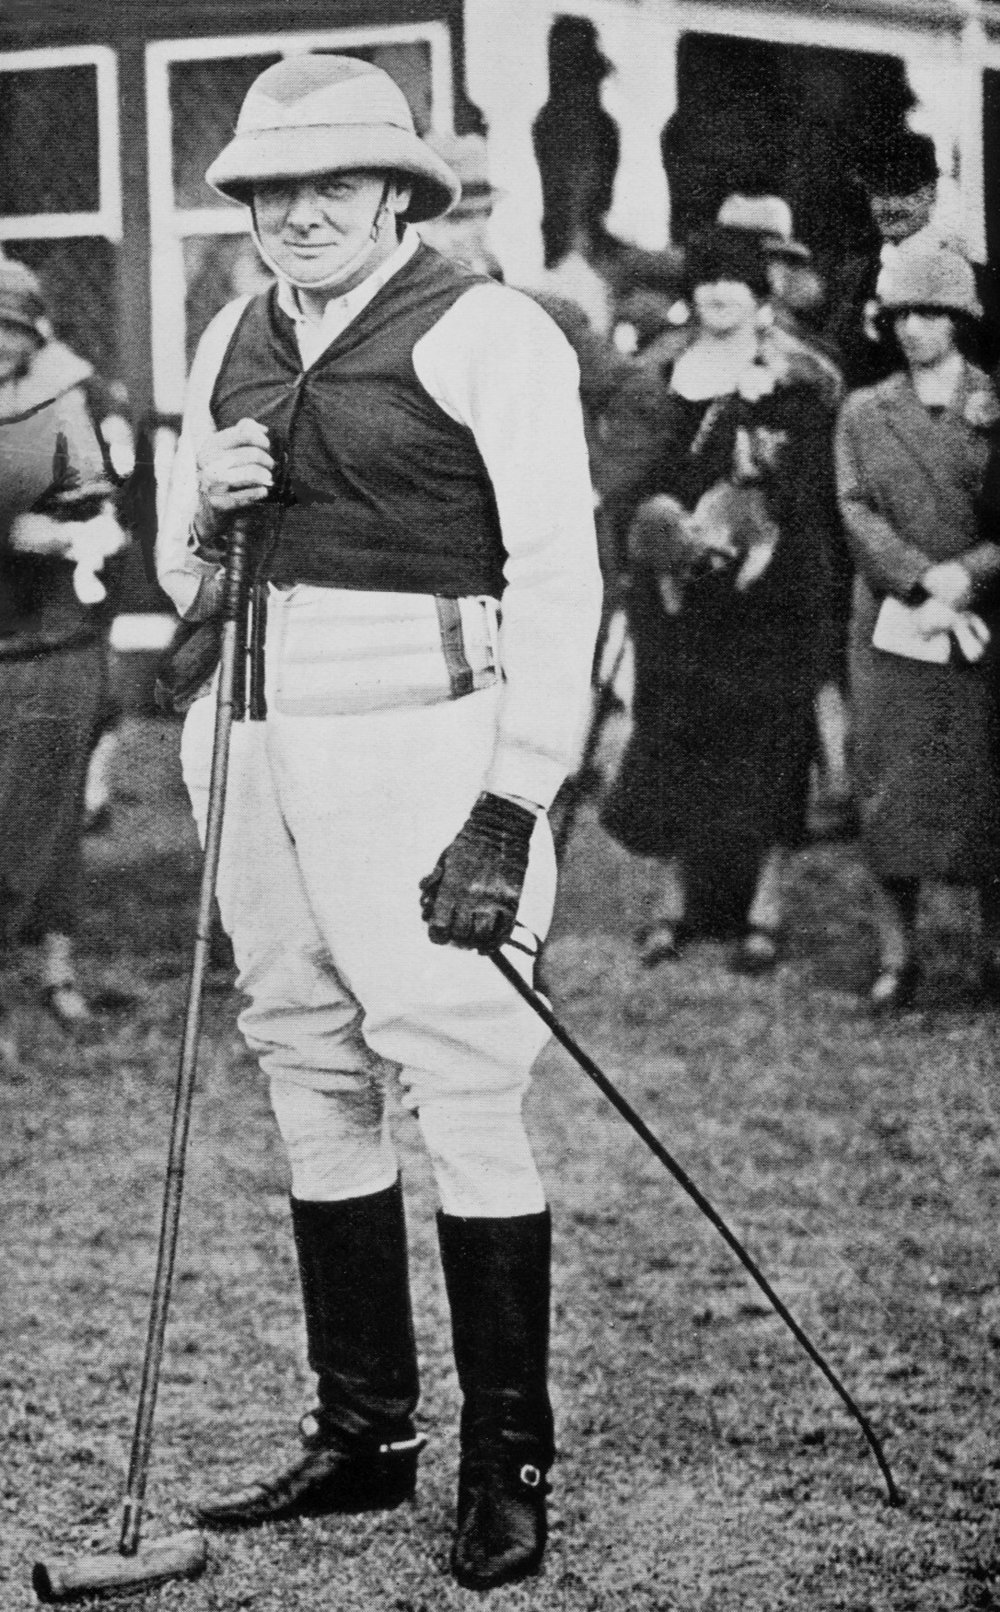 Winston Churchill - The Polo Player